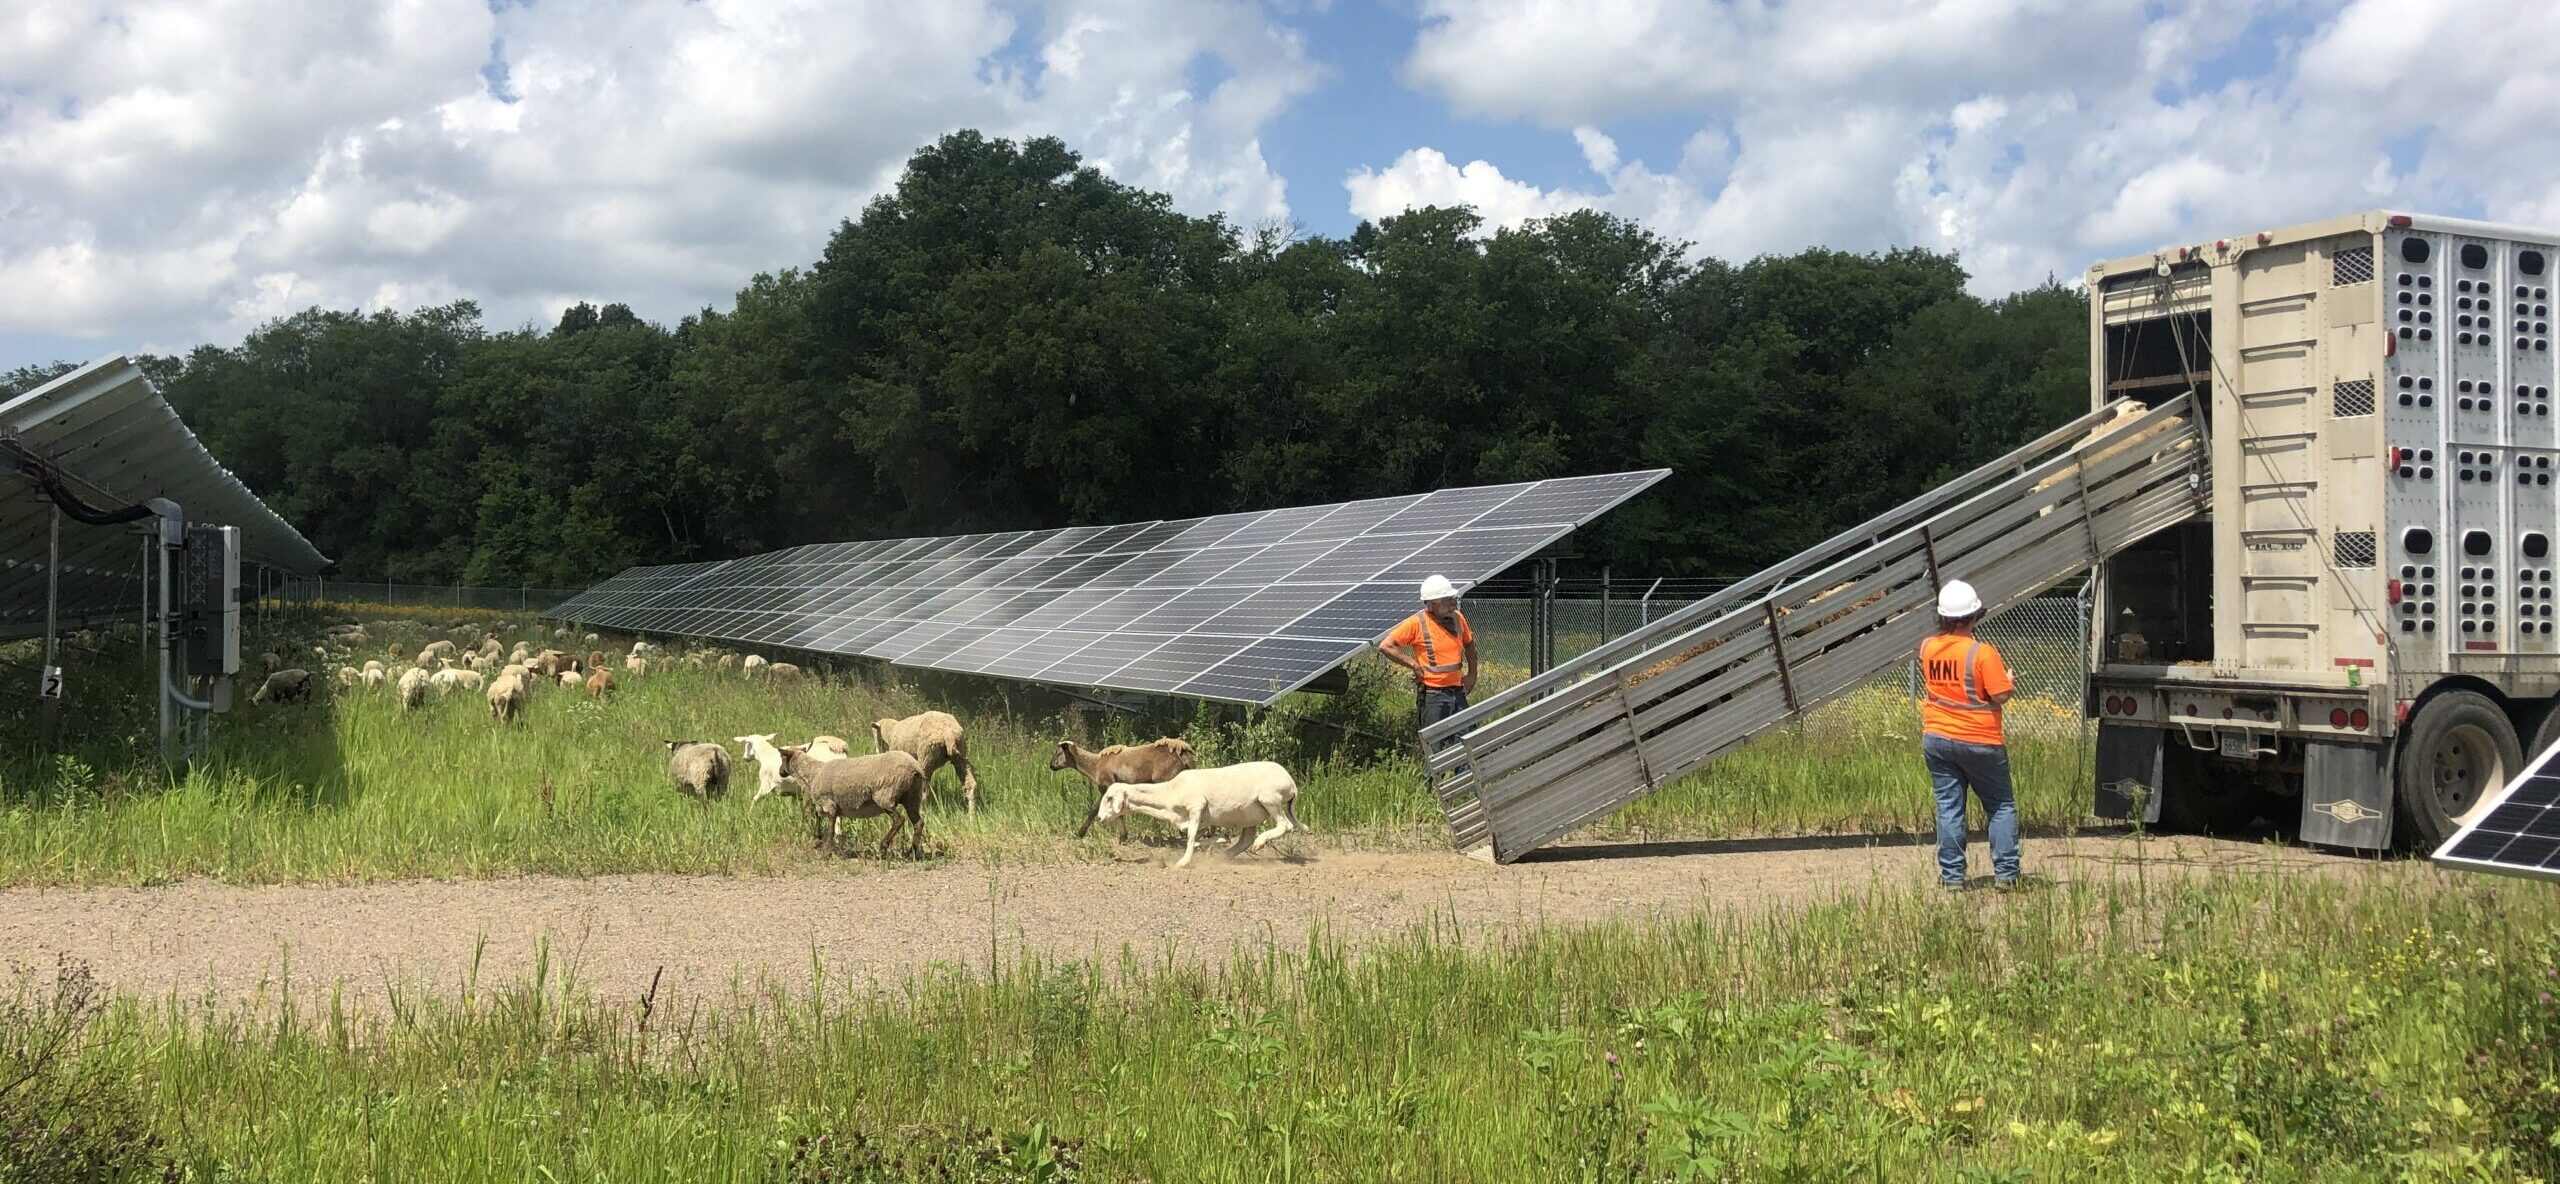 sheep being unloaded at a solar energy site